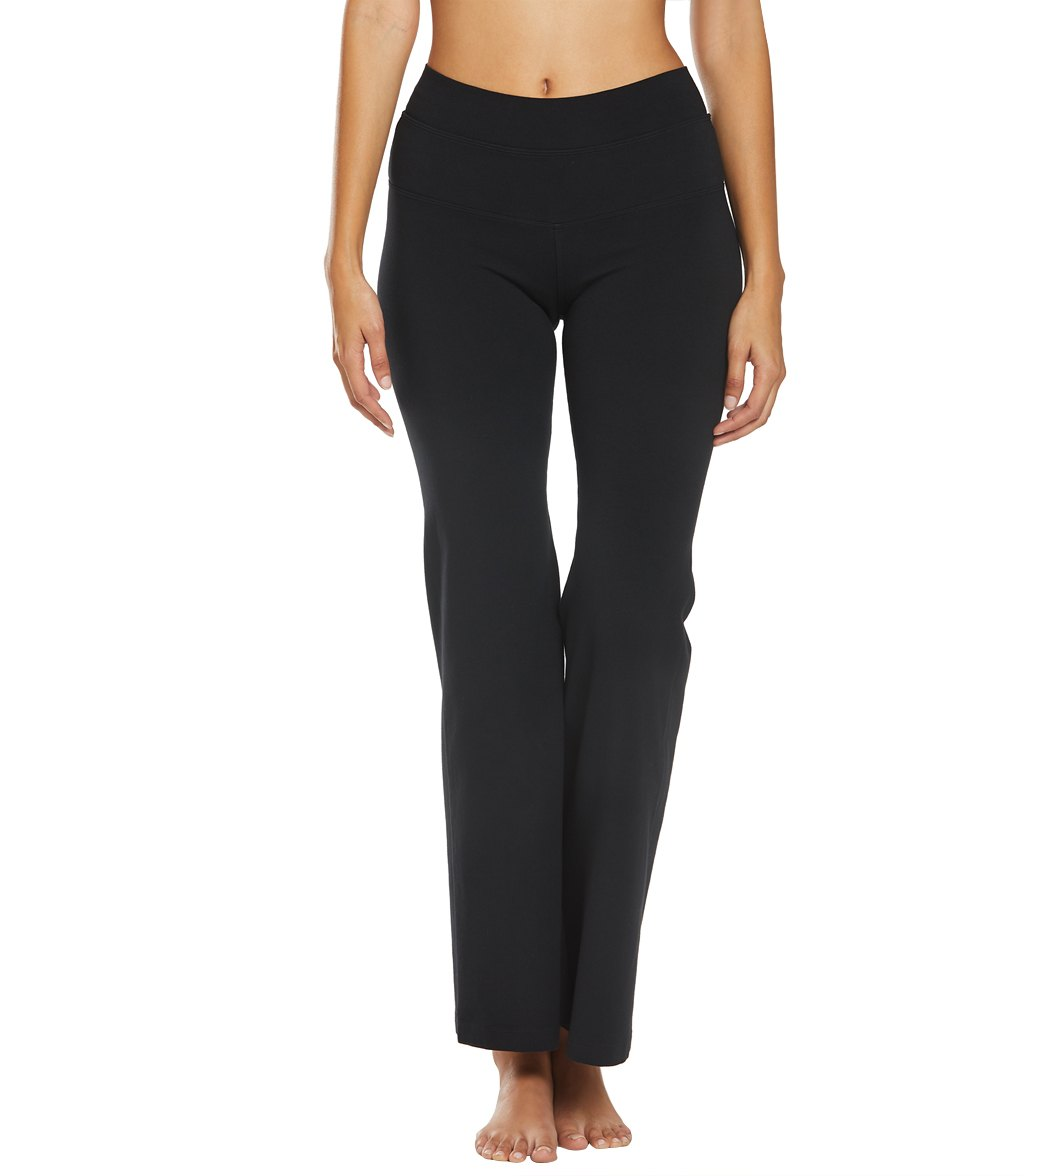 Hard Tail High Waisted Wide Flare Yoga Pants - Black Cotton